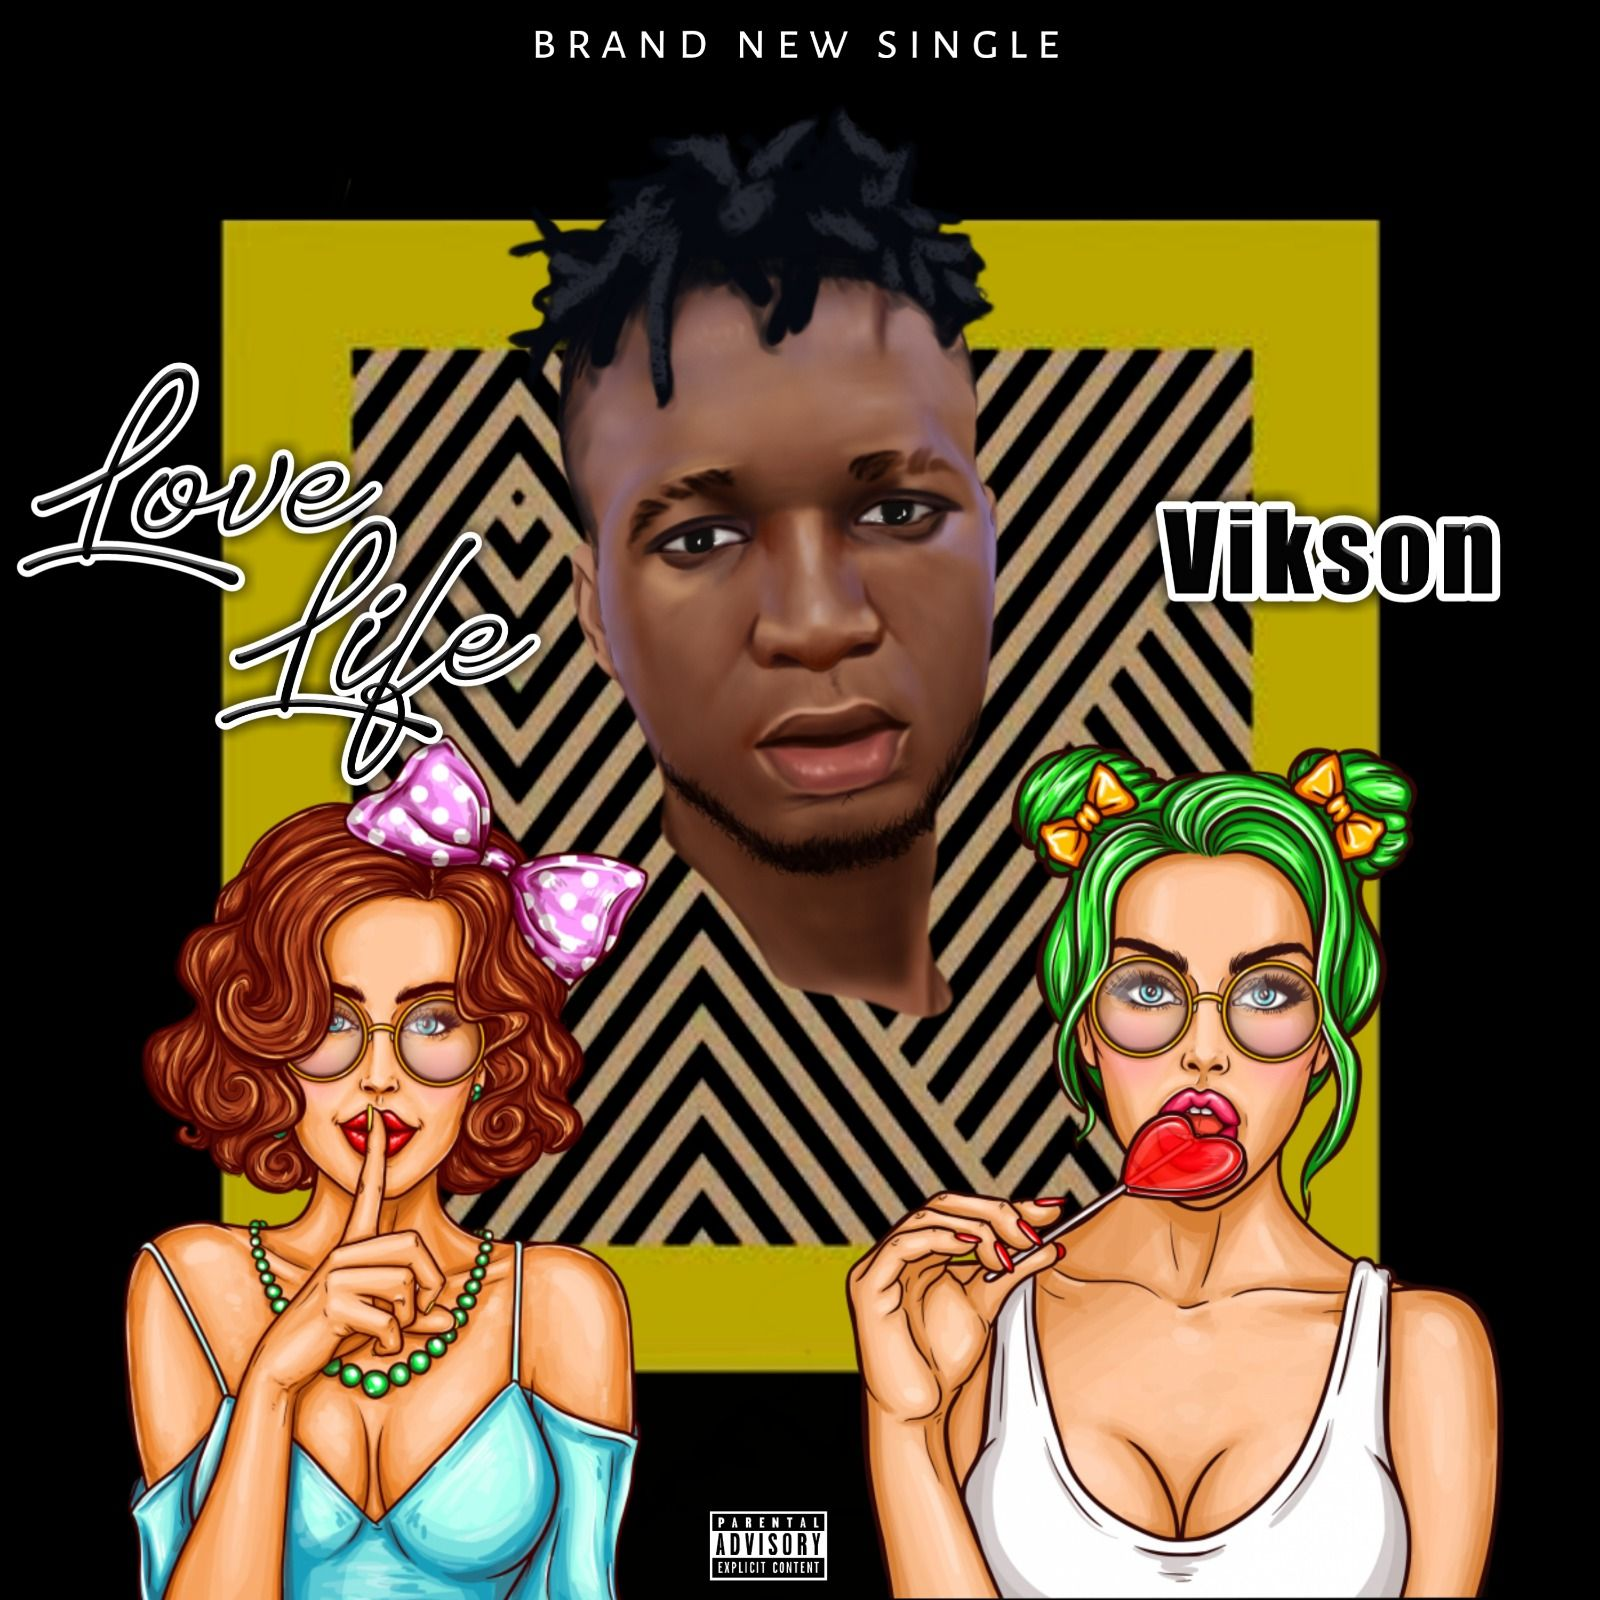 Love life by Vikson from music promotion: Listen for free